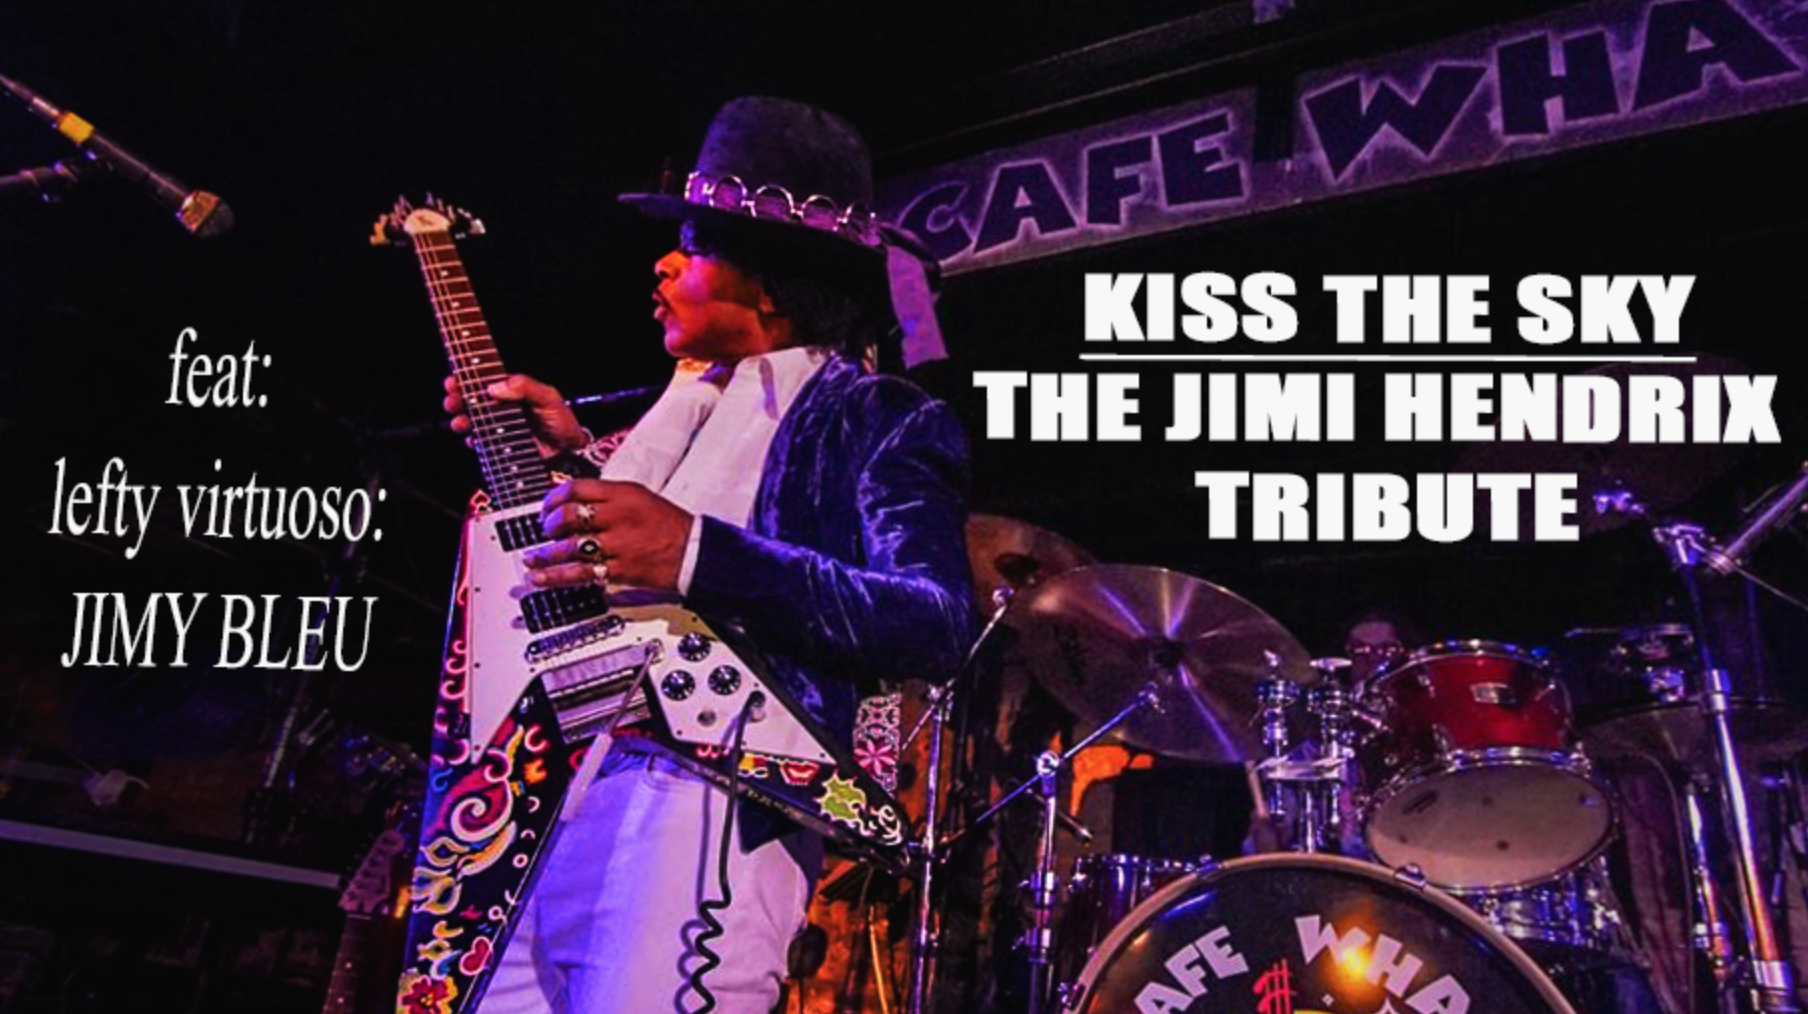 Kiss The Sky: Jimi Hendrix Birthday Tribute